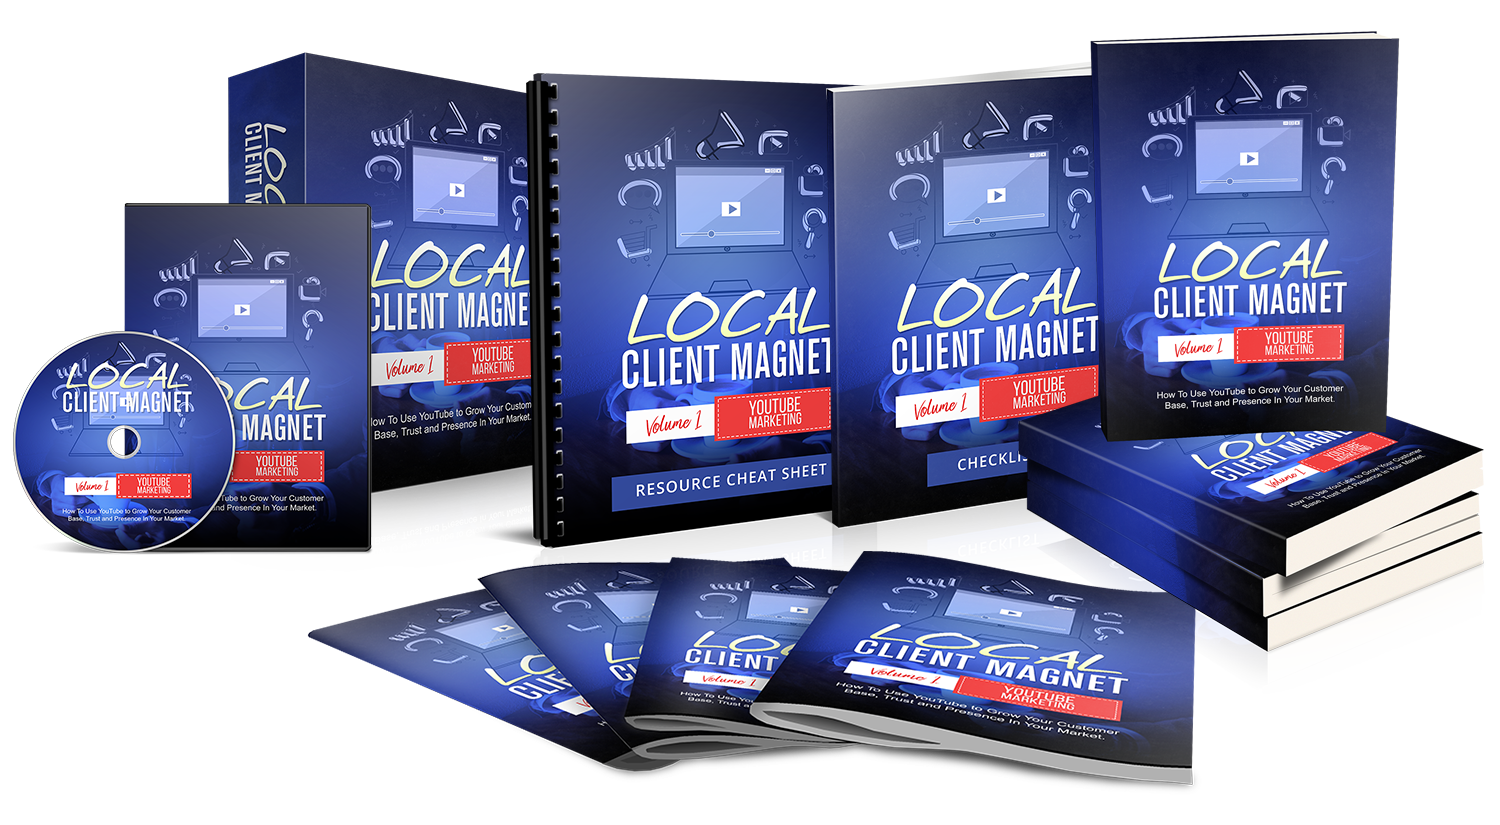 Local Client Magnet Volume 1 YouTube Marketing Local Client Magnet Volume 1 YouTube Marketing